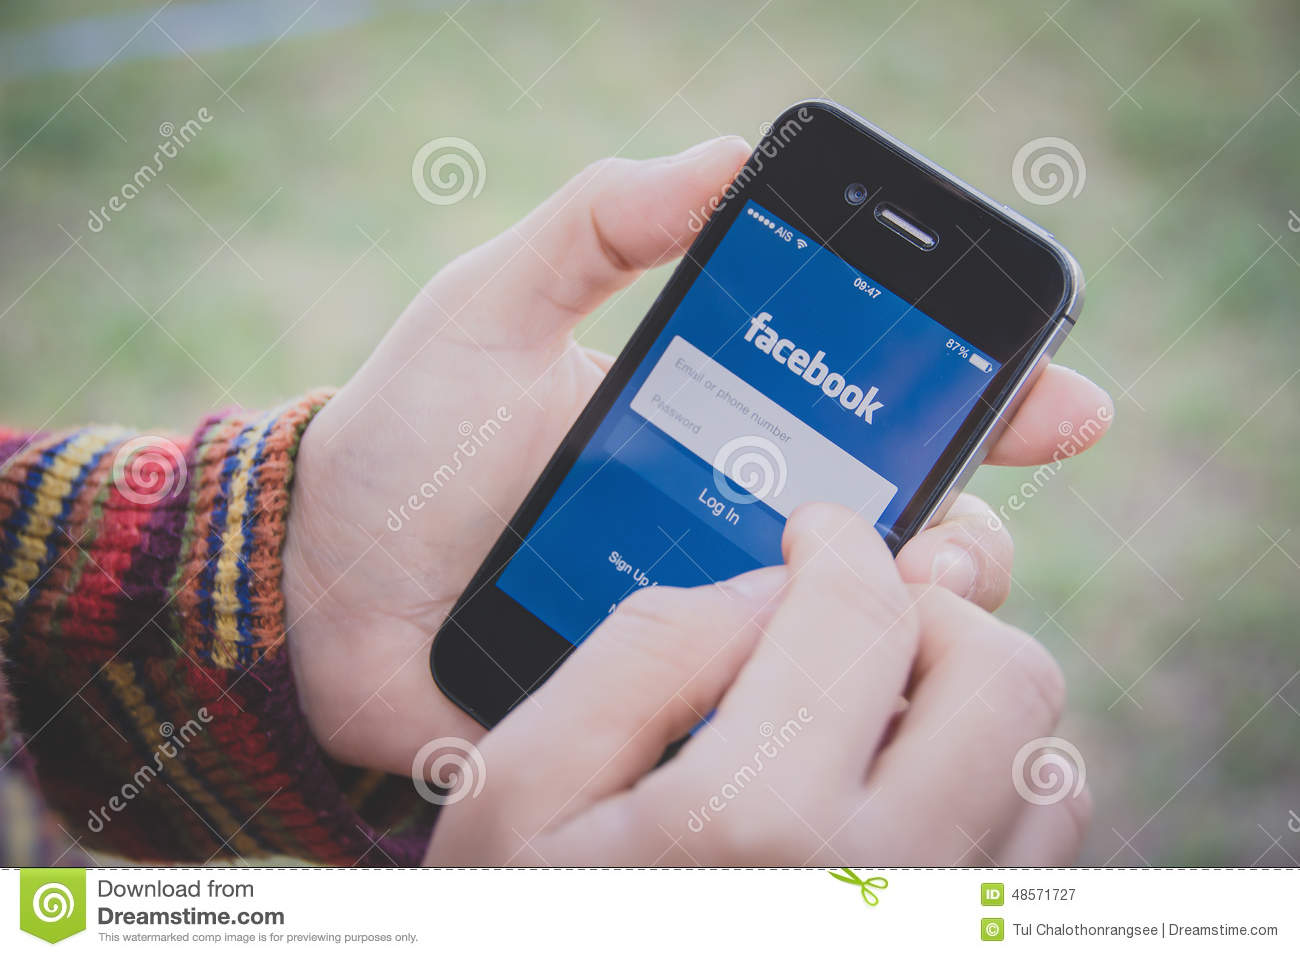 Hand holding Iphone and using Facebook application